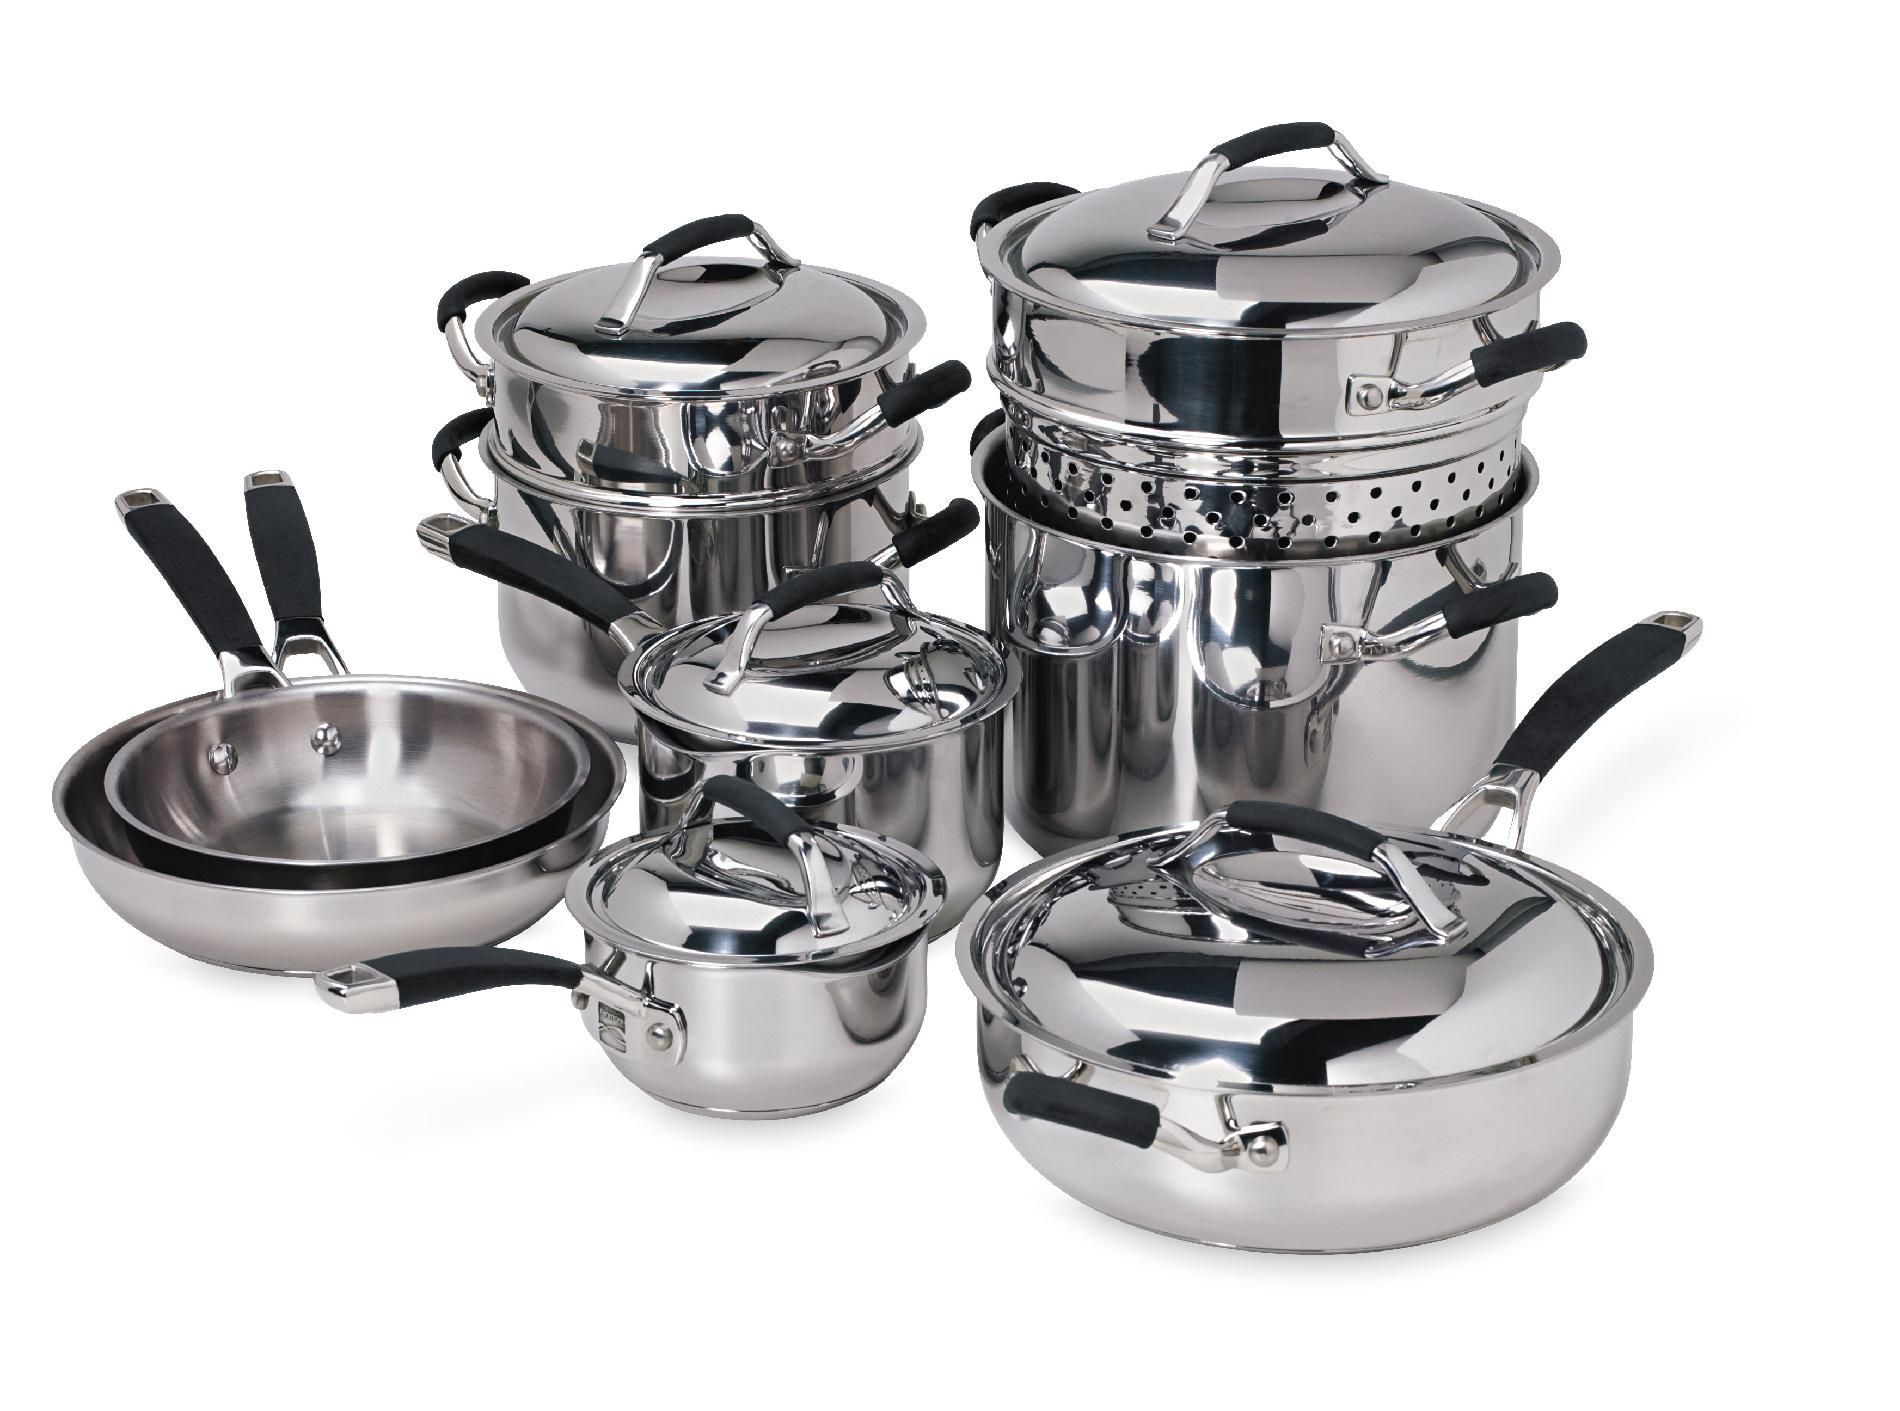 Kenmore 14Pc Stainless Steel Cookware Set